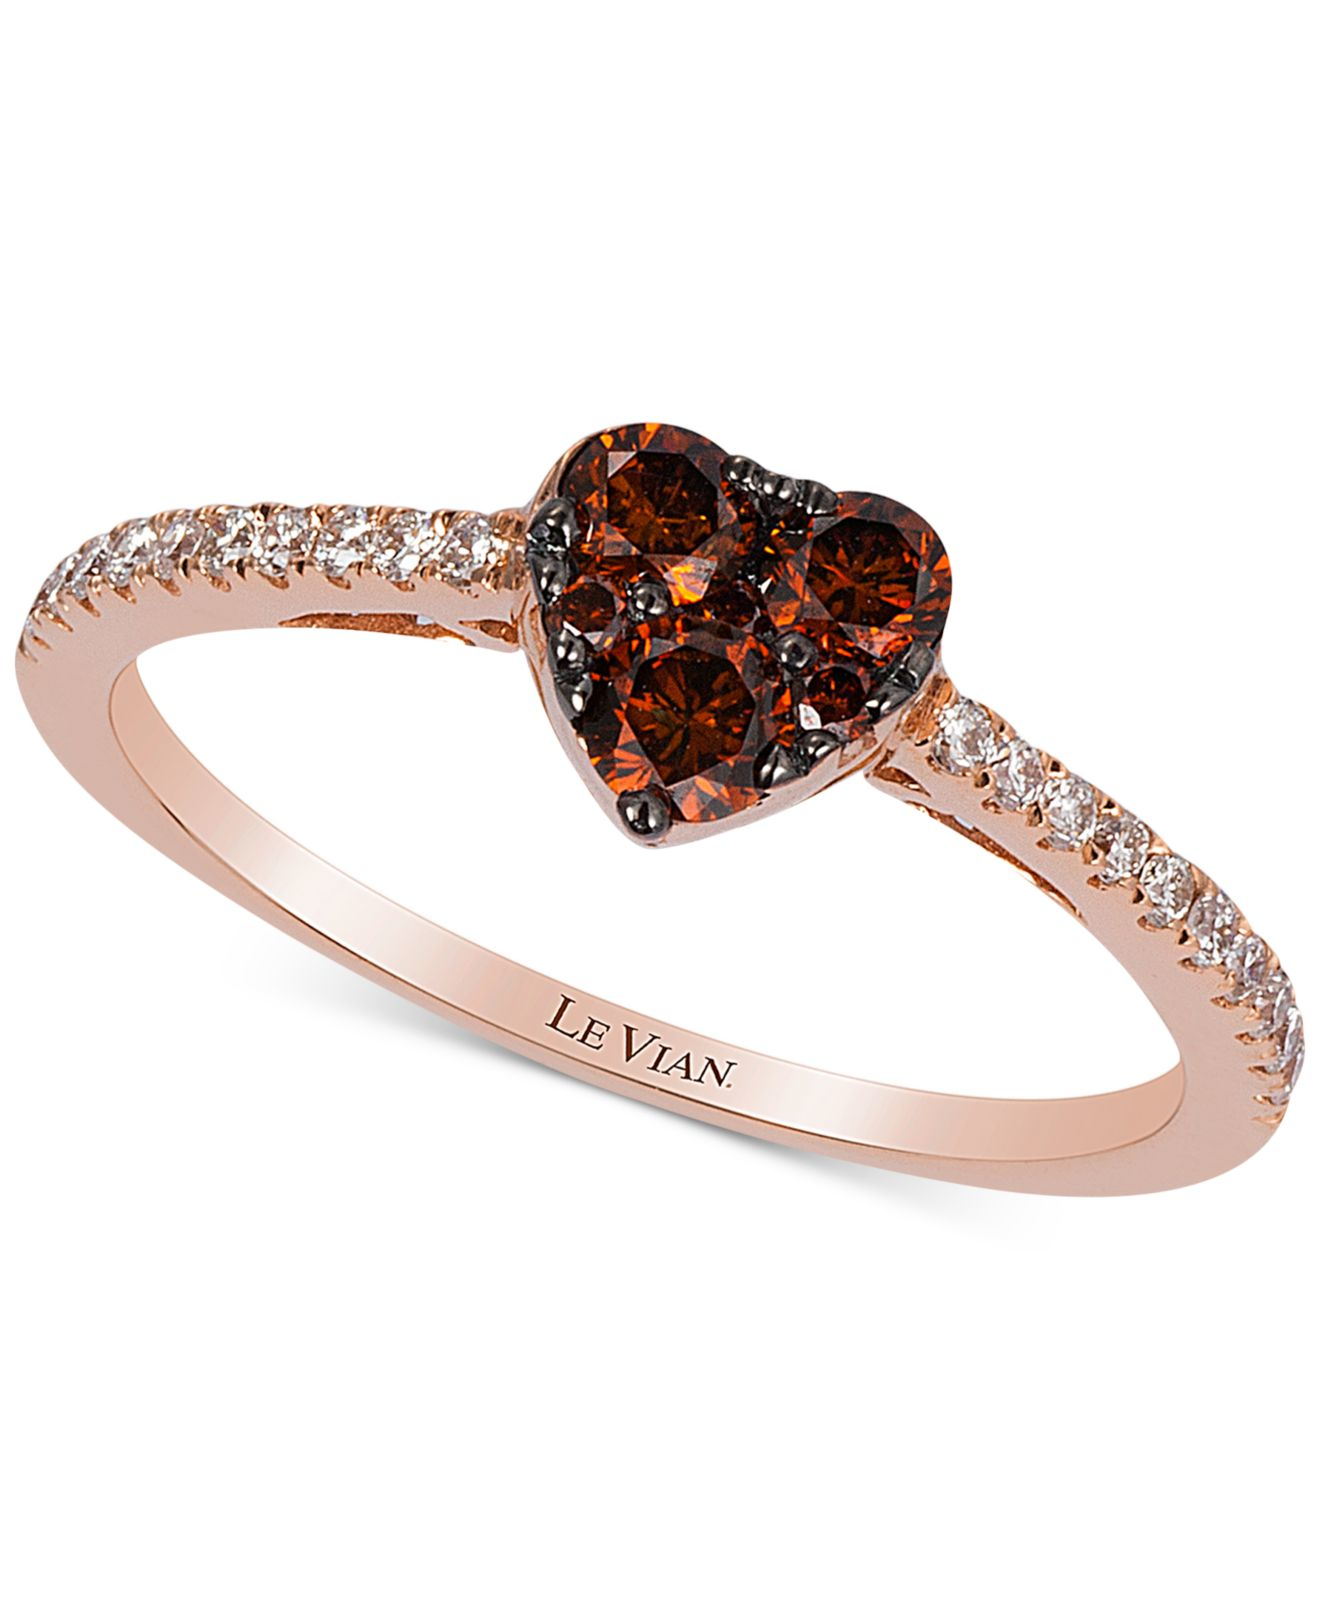 le vian exotics chocolate and white diamond heart ring 1. Black Bedroom Furniture Sets. Home Design Ideas